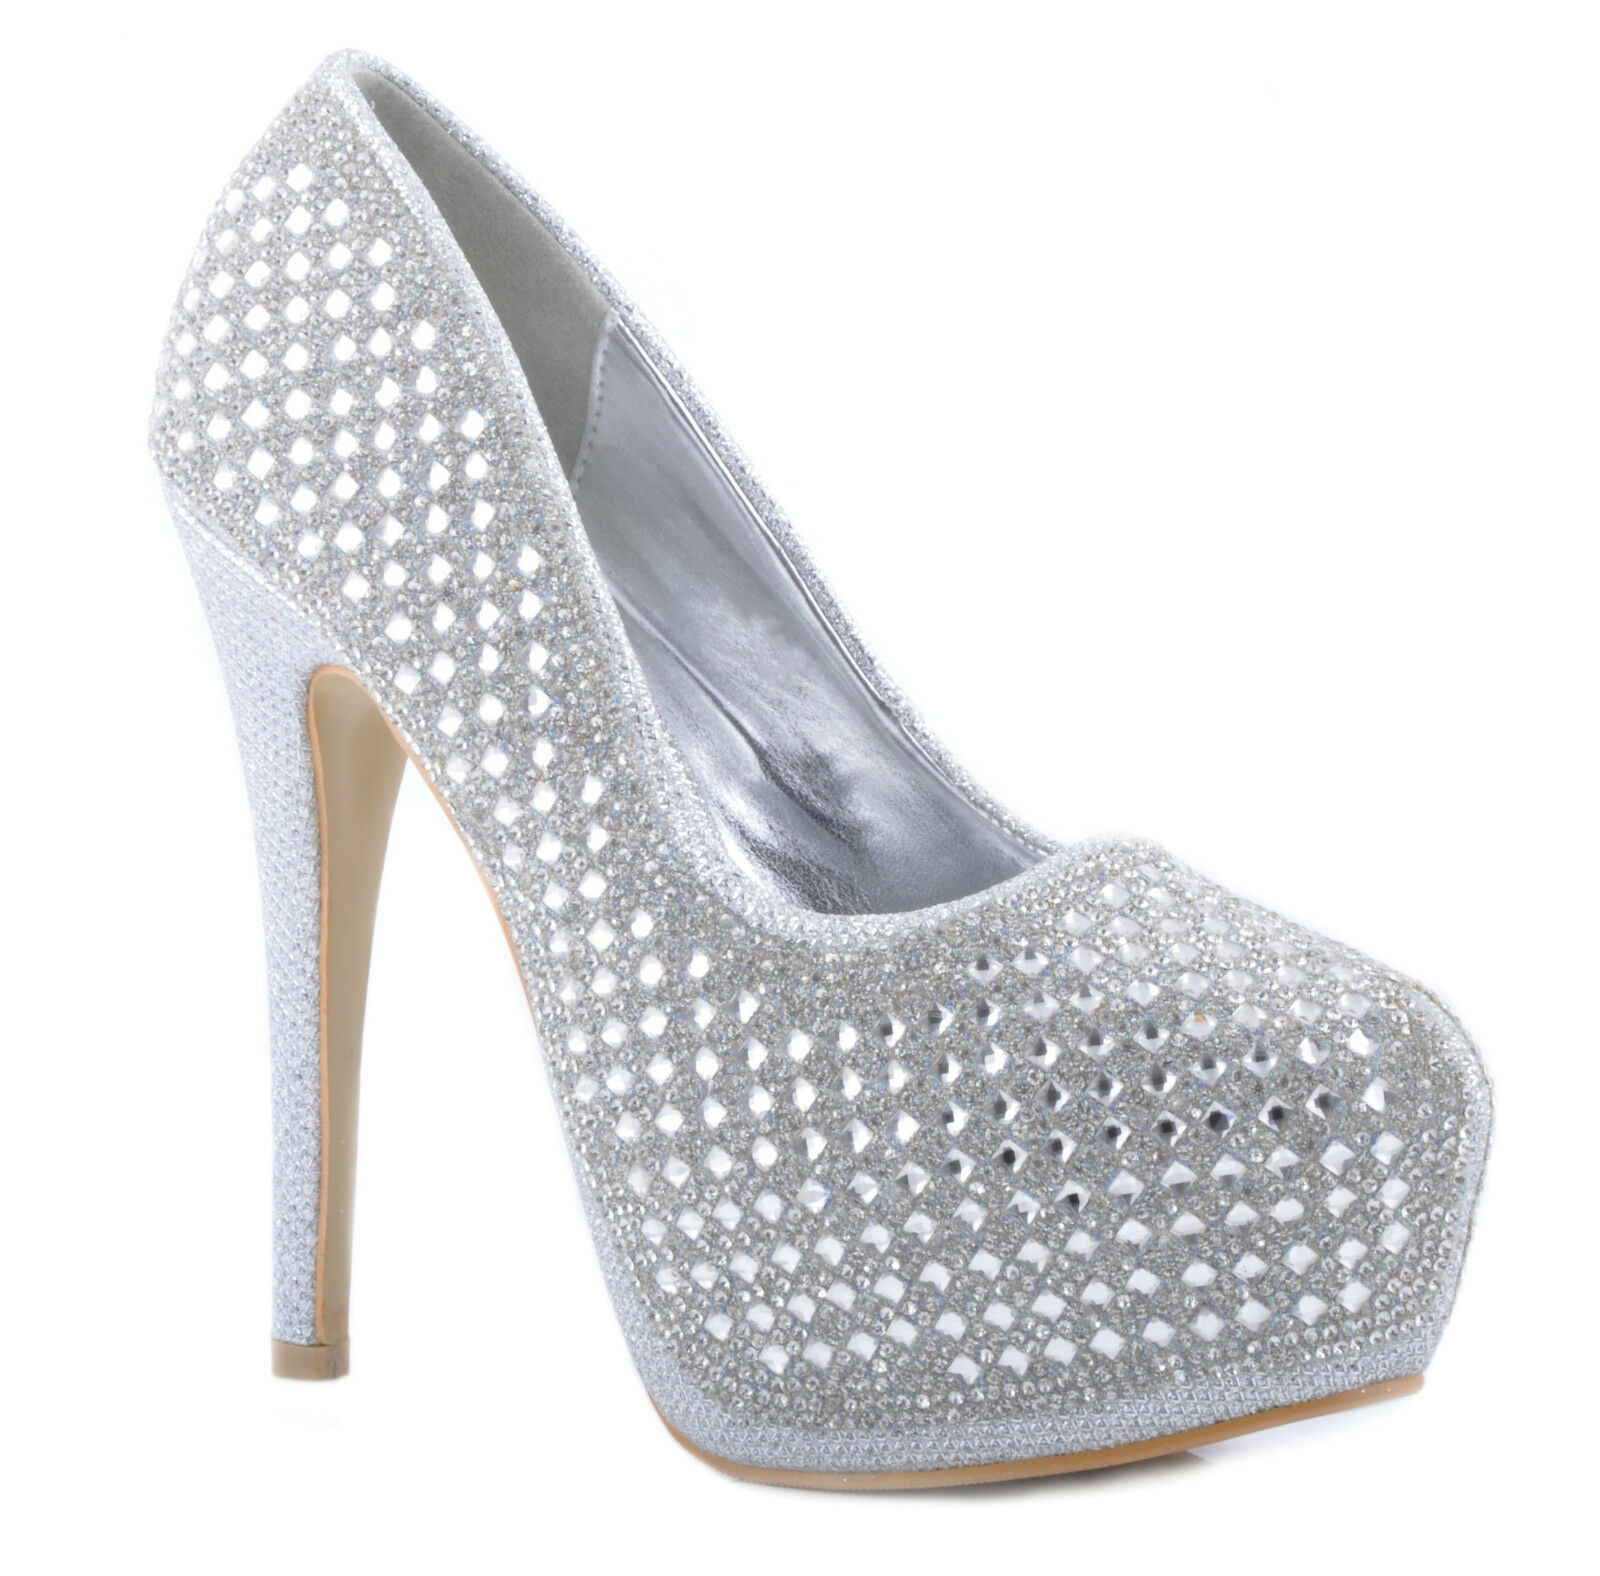 Silver Shiny Diamantes Studded Platorm High Heels Wedding Bridal Party Prom Heel